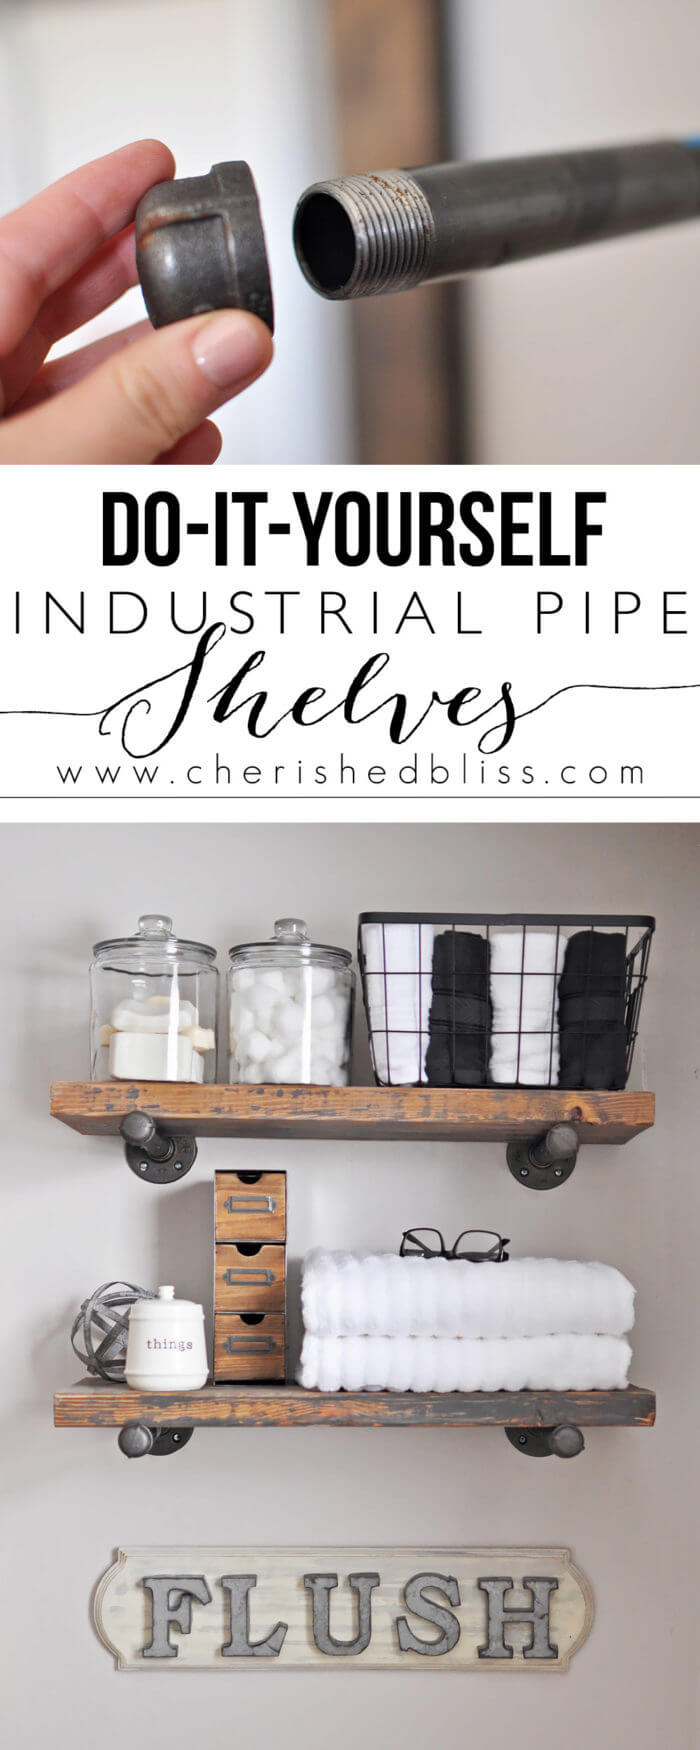 DIY Industrial-Style Bathroom Shelving